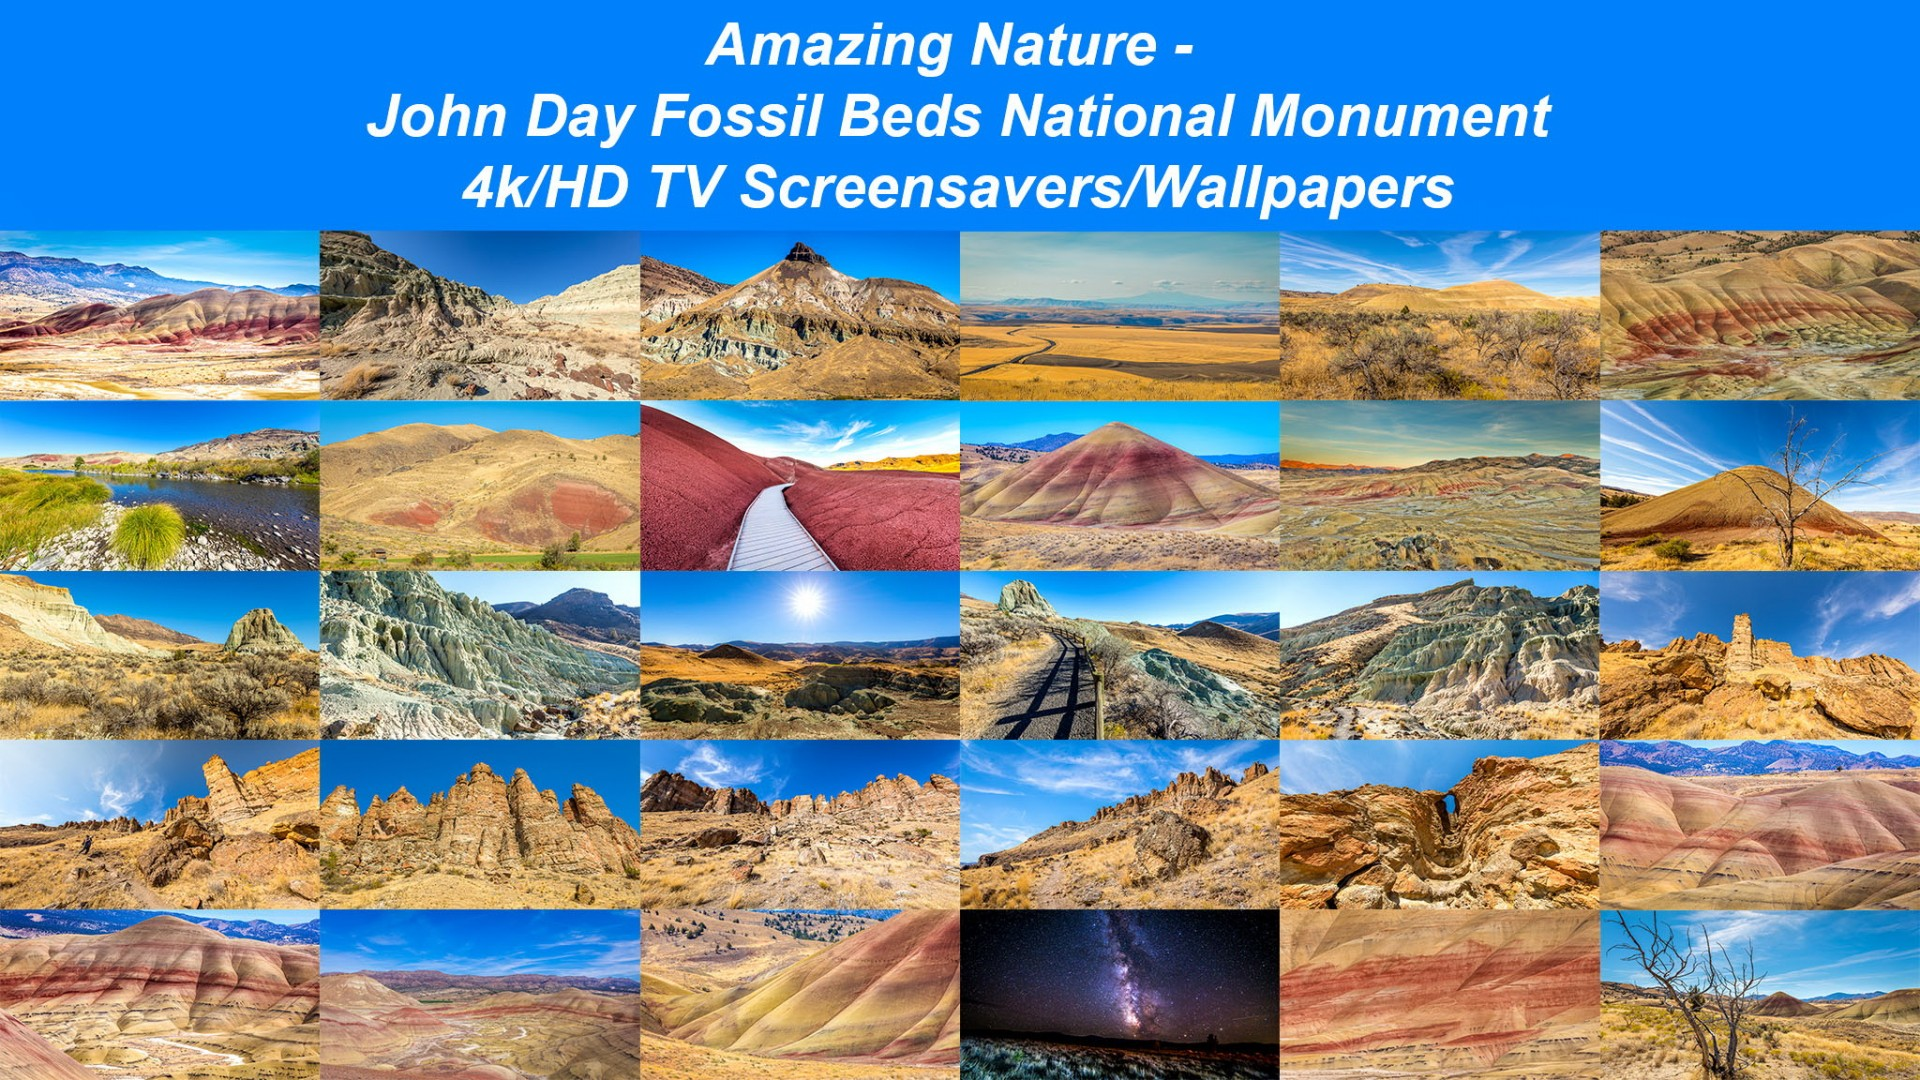 john day fossil beds national monument tv screensavers proartinc amazing nature john day fossil beds national monument hd 4k 8k tv screensavers